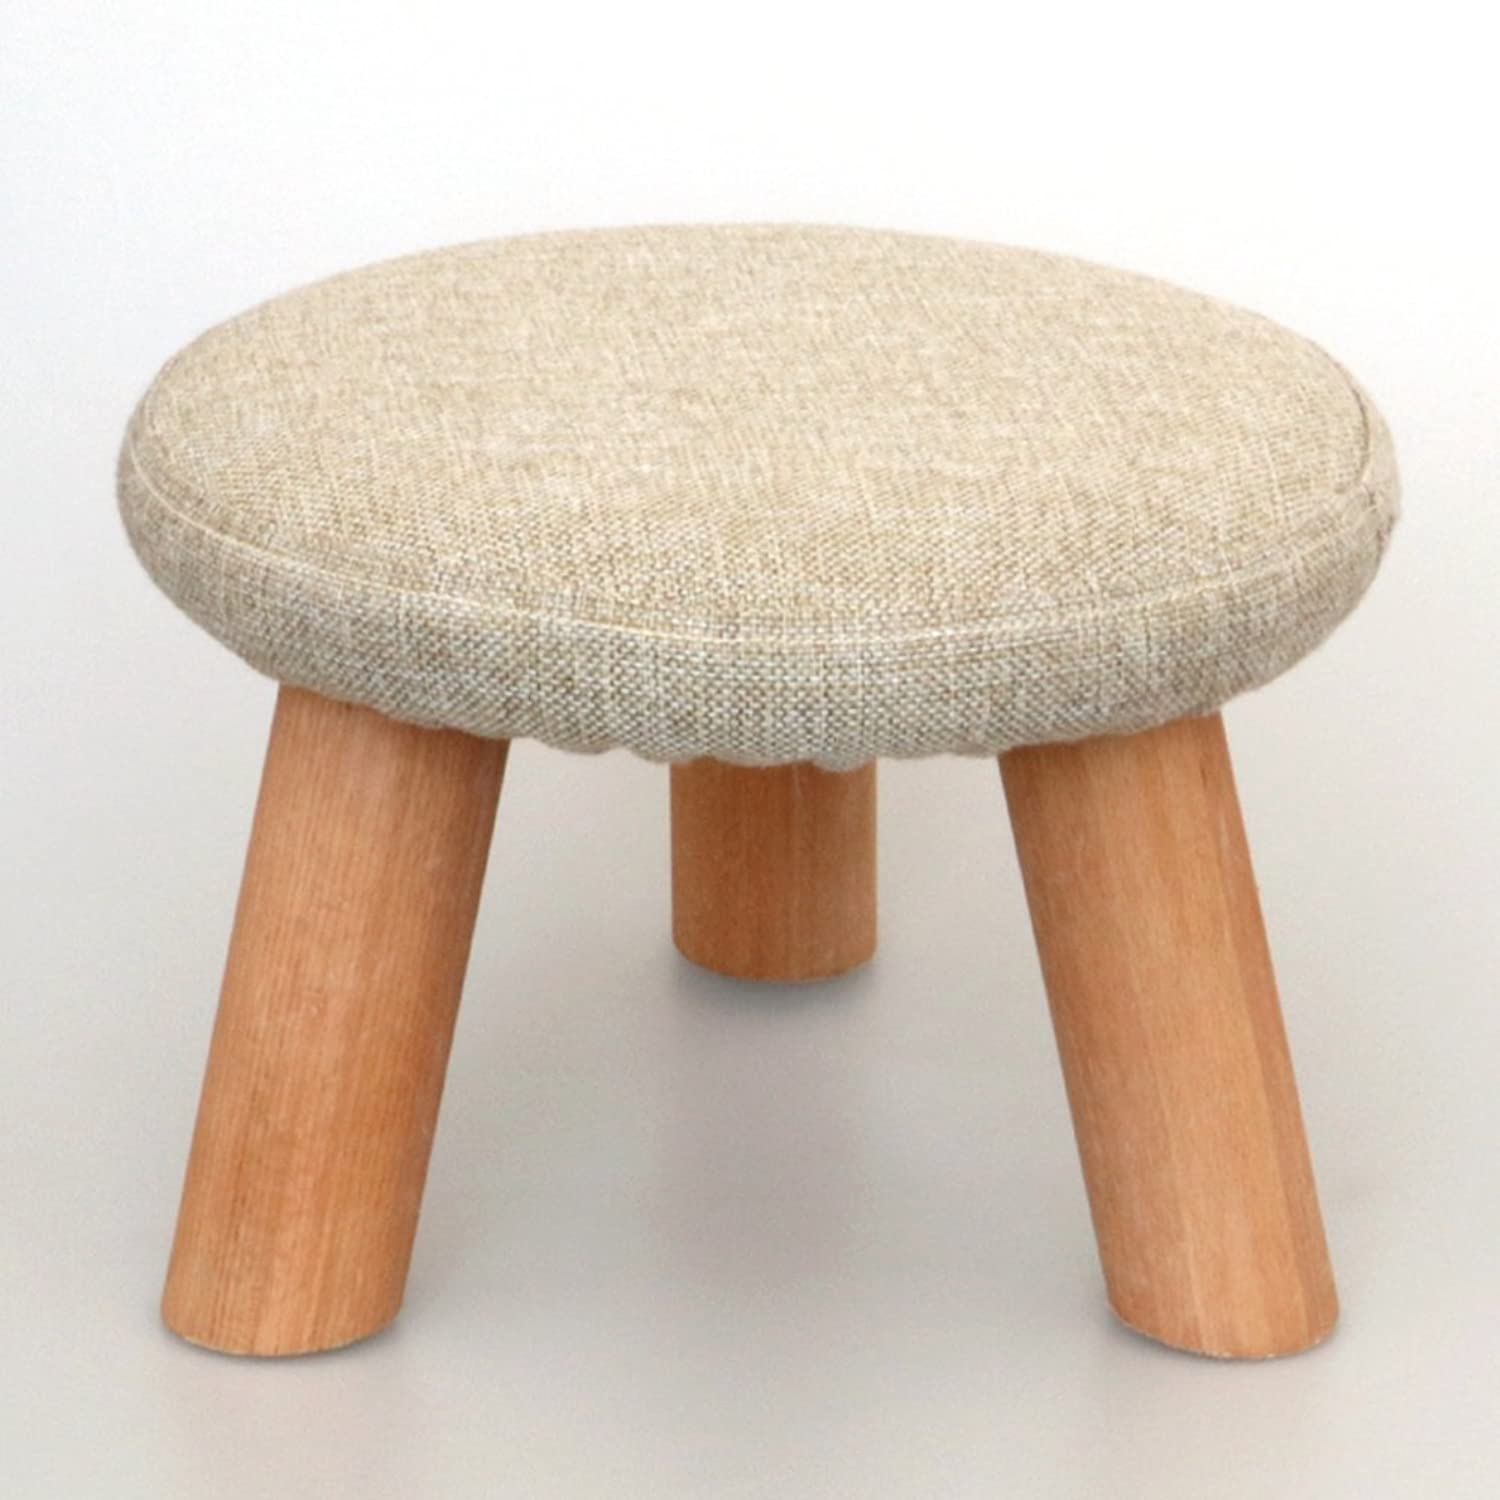 Household use Solid Wood Fashion Creative Round Stool Living Room ...